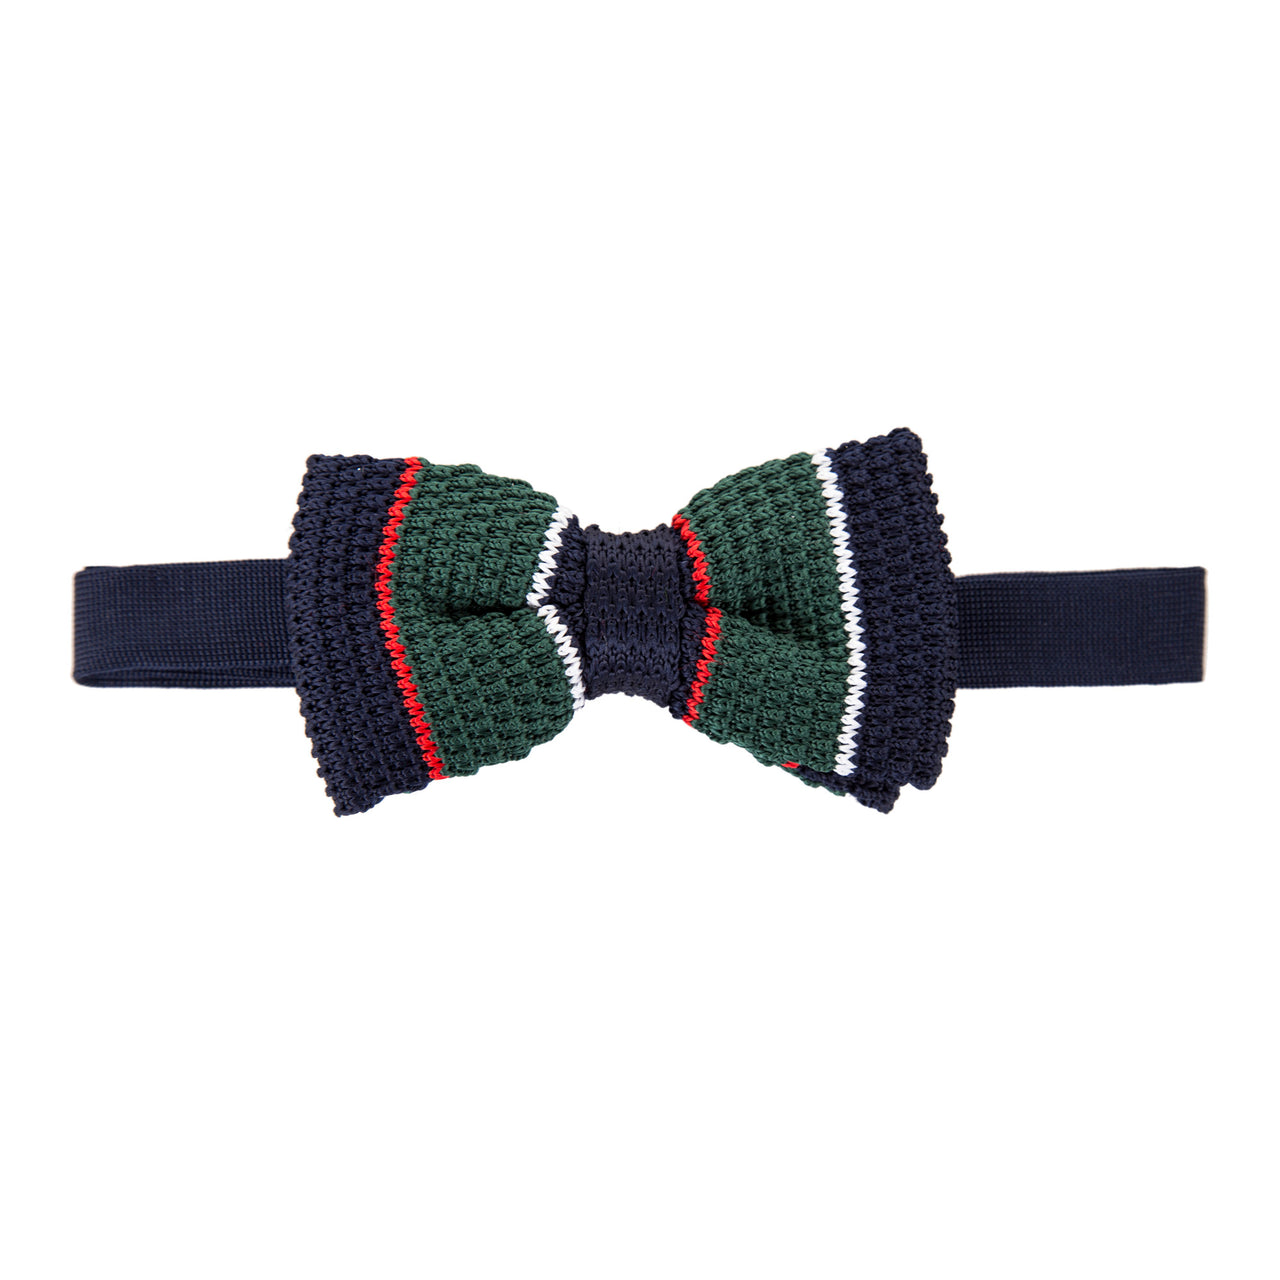 Pre-tied Knitted Bow Tie - Navy/Red/Green/White Stripe